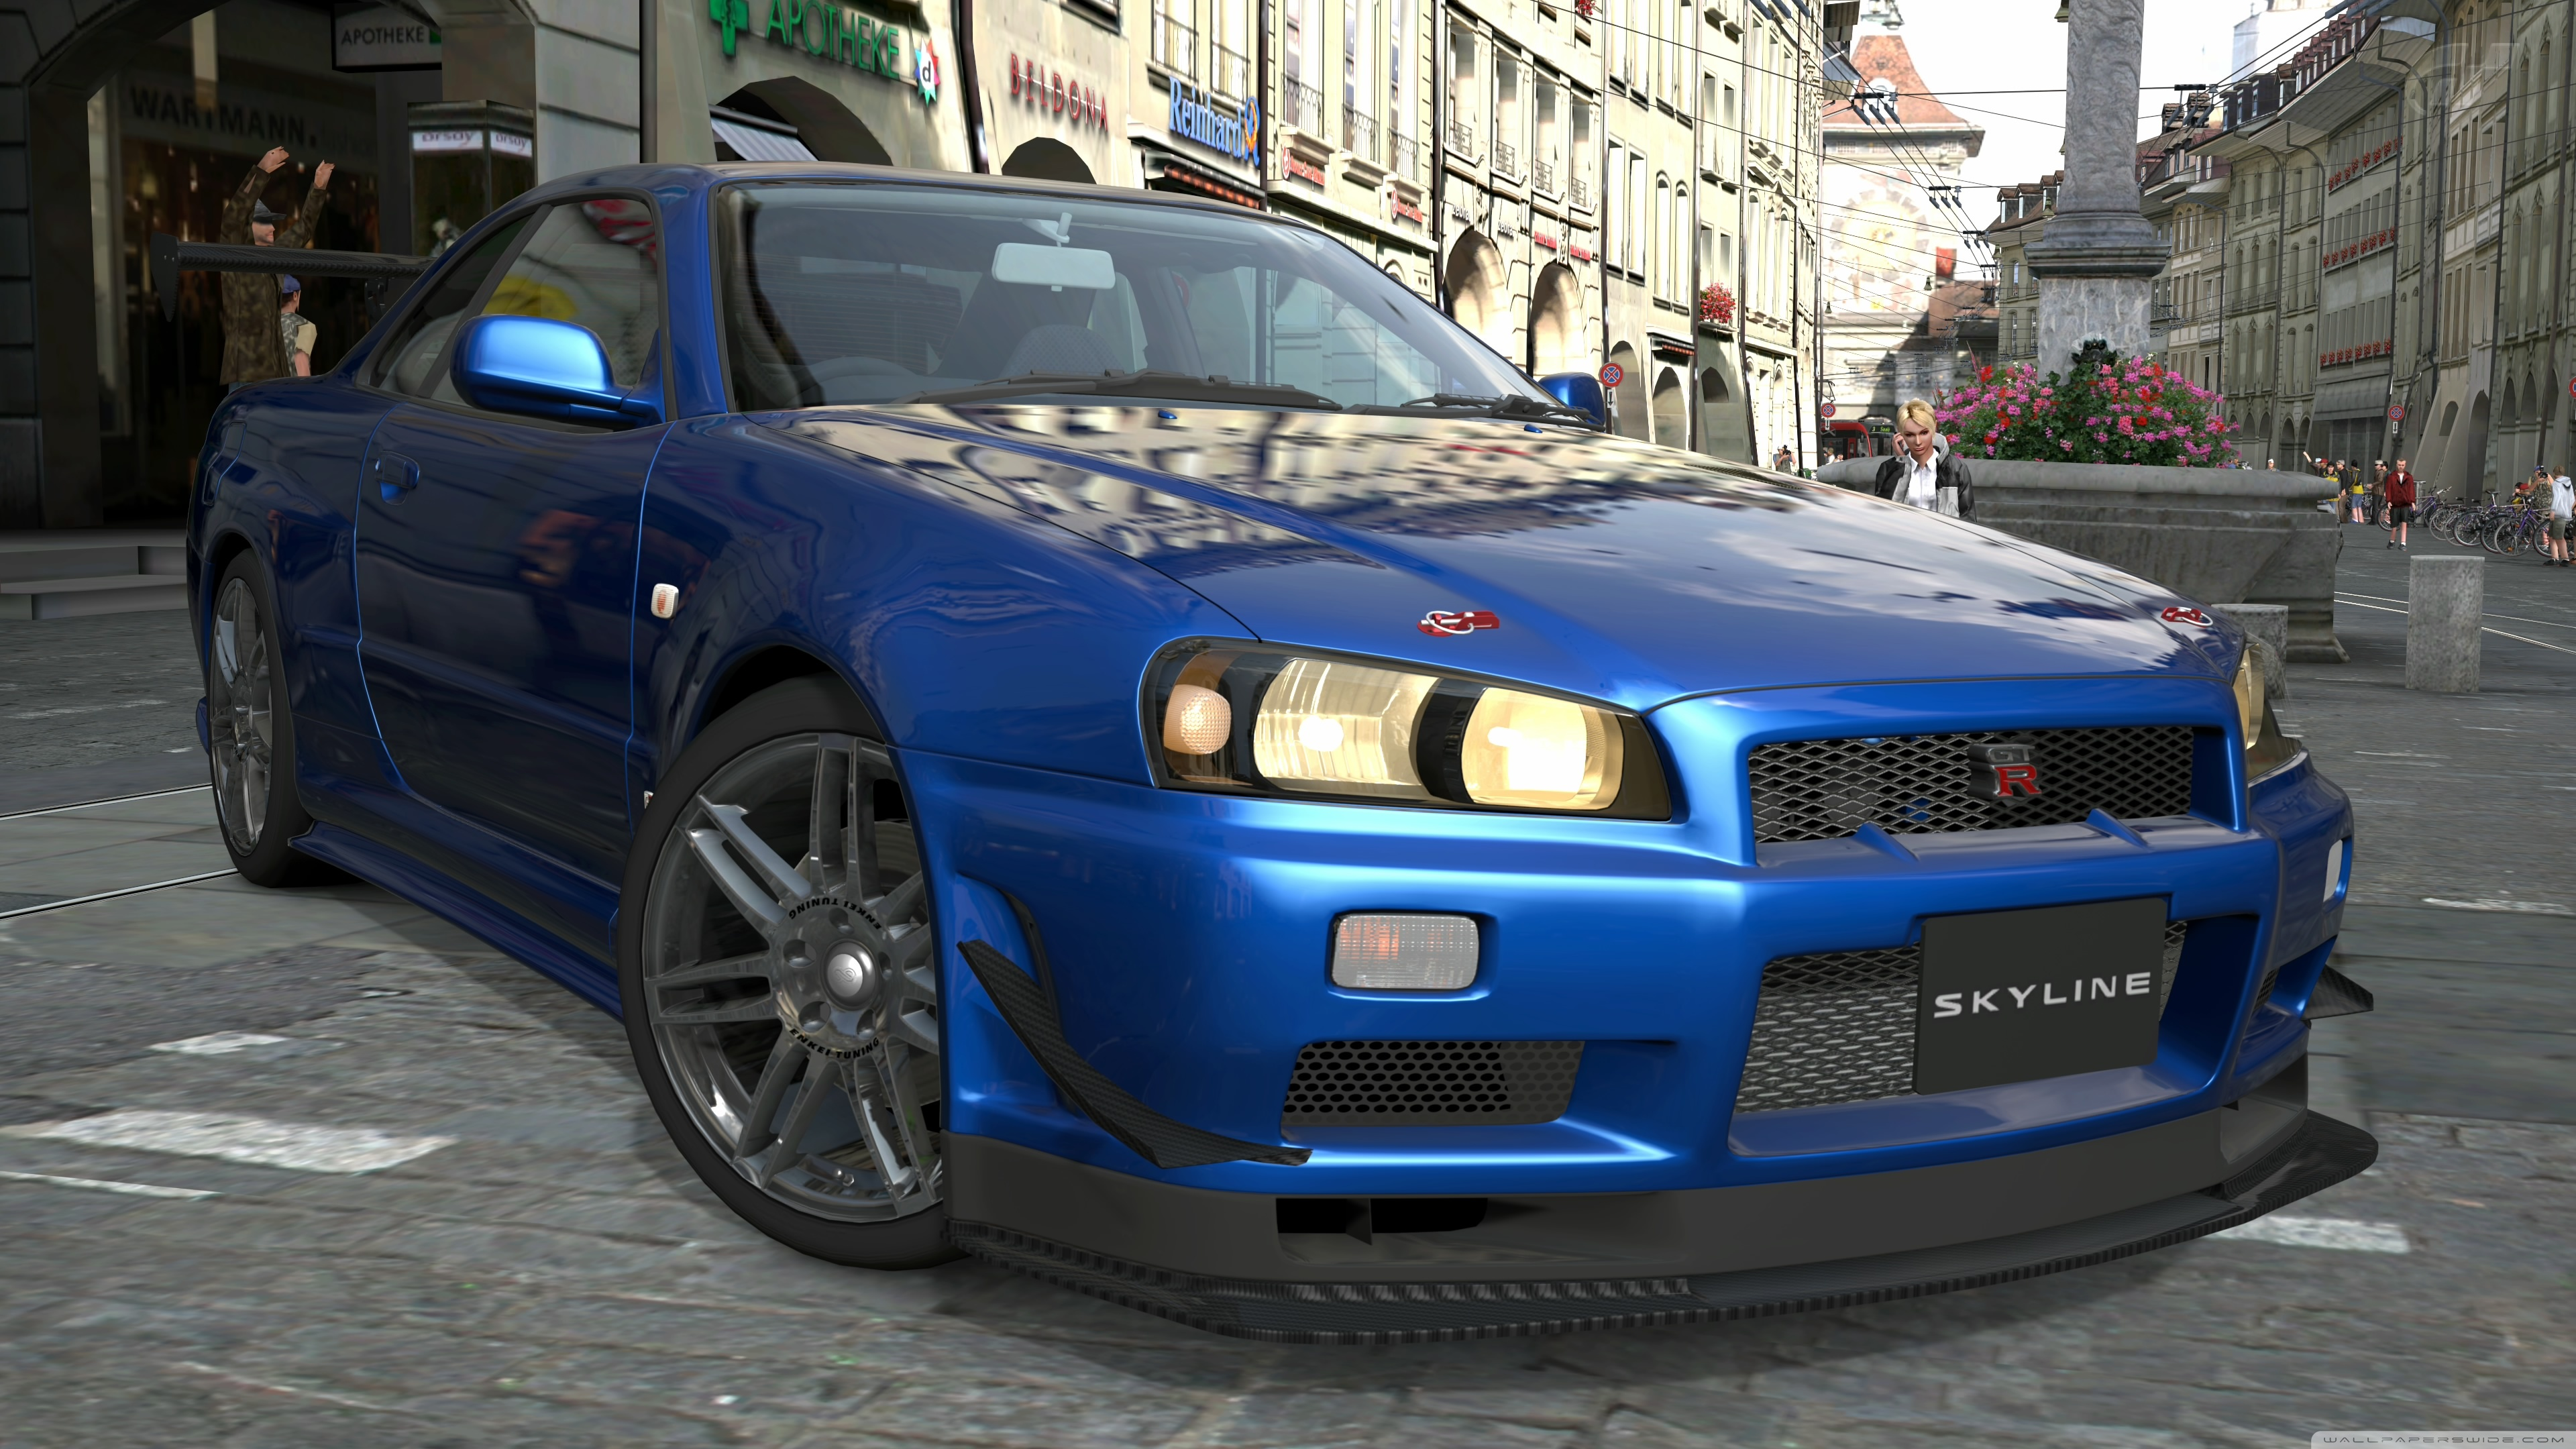 Nissan Skyline R34 Uhd 2607124 Hd Wallpaper Backgrounds